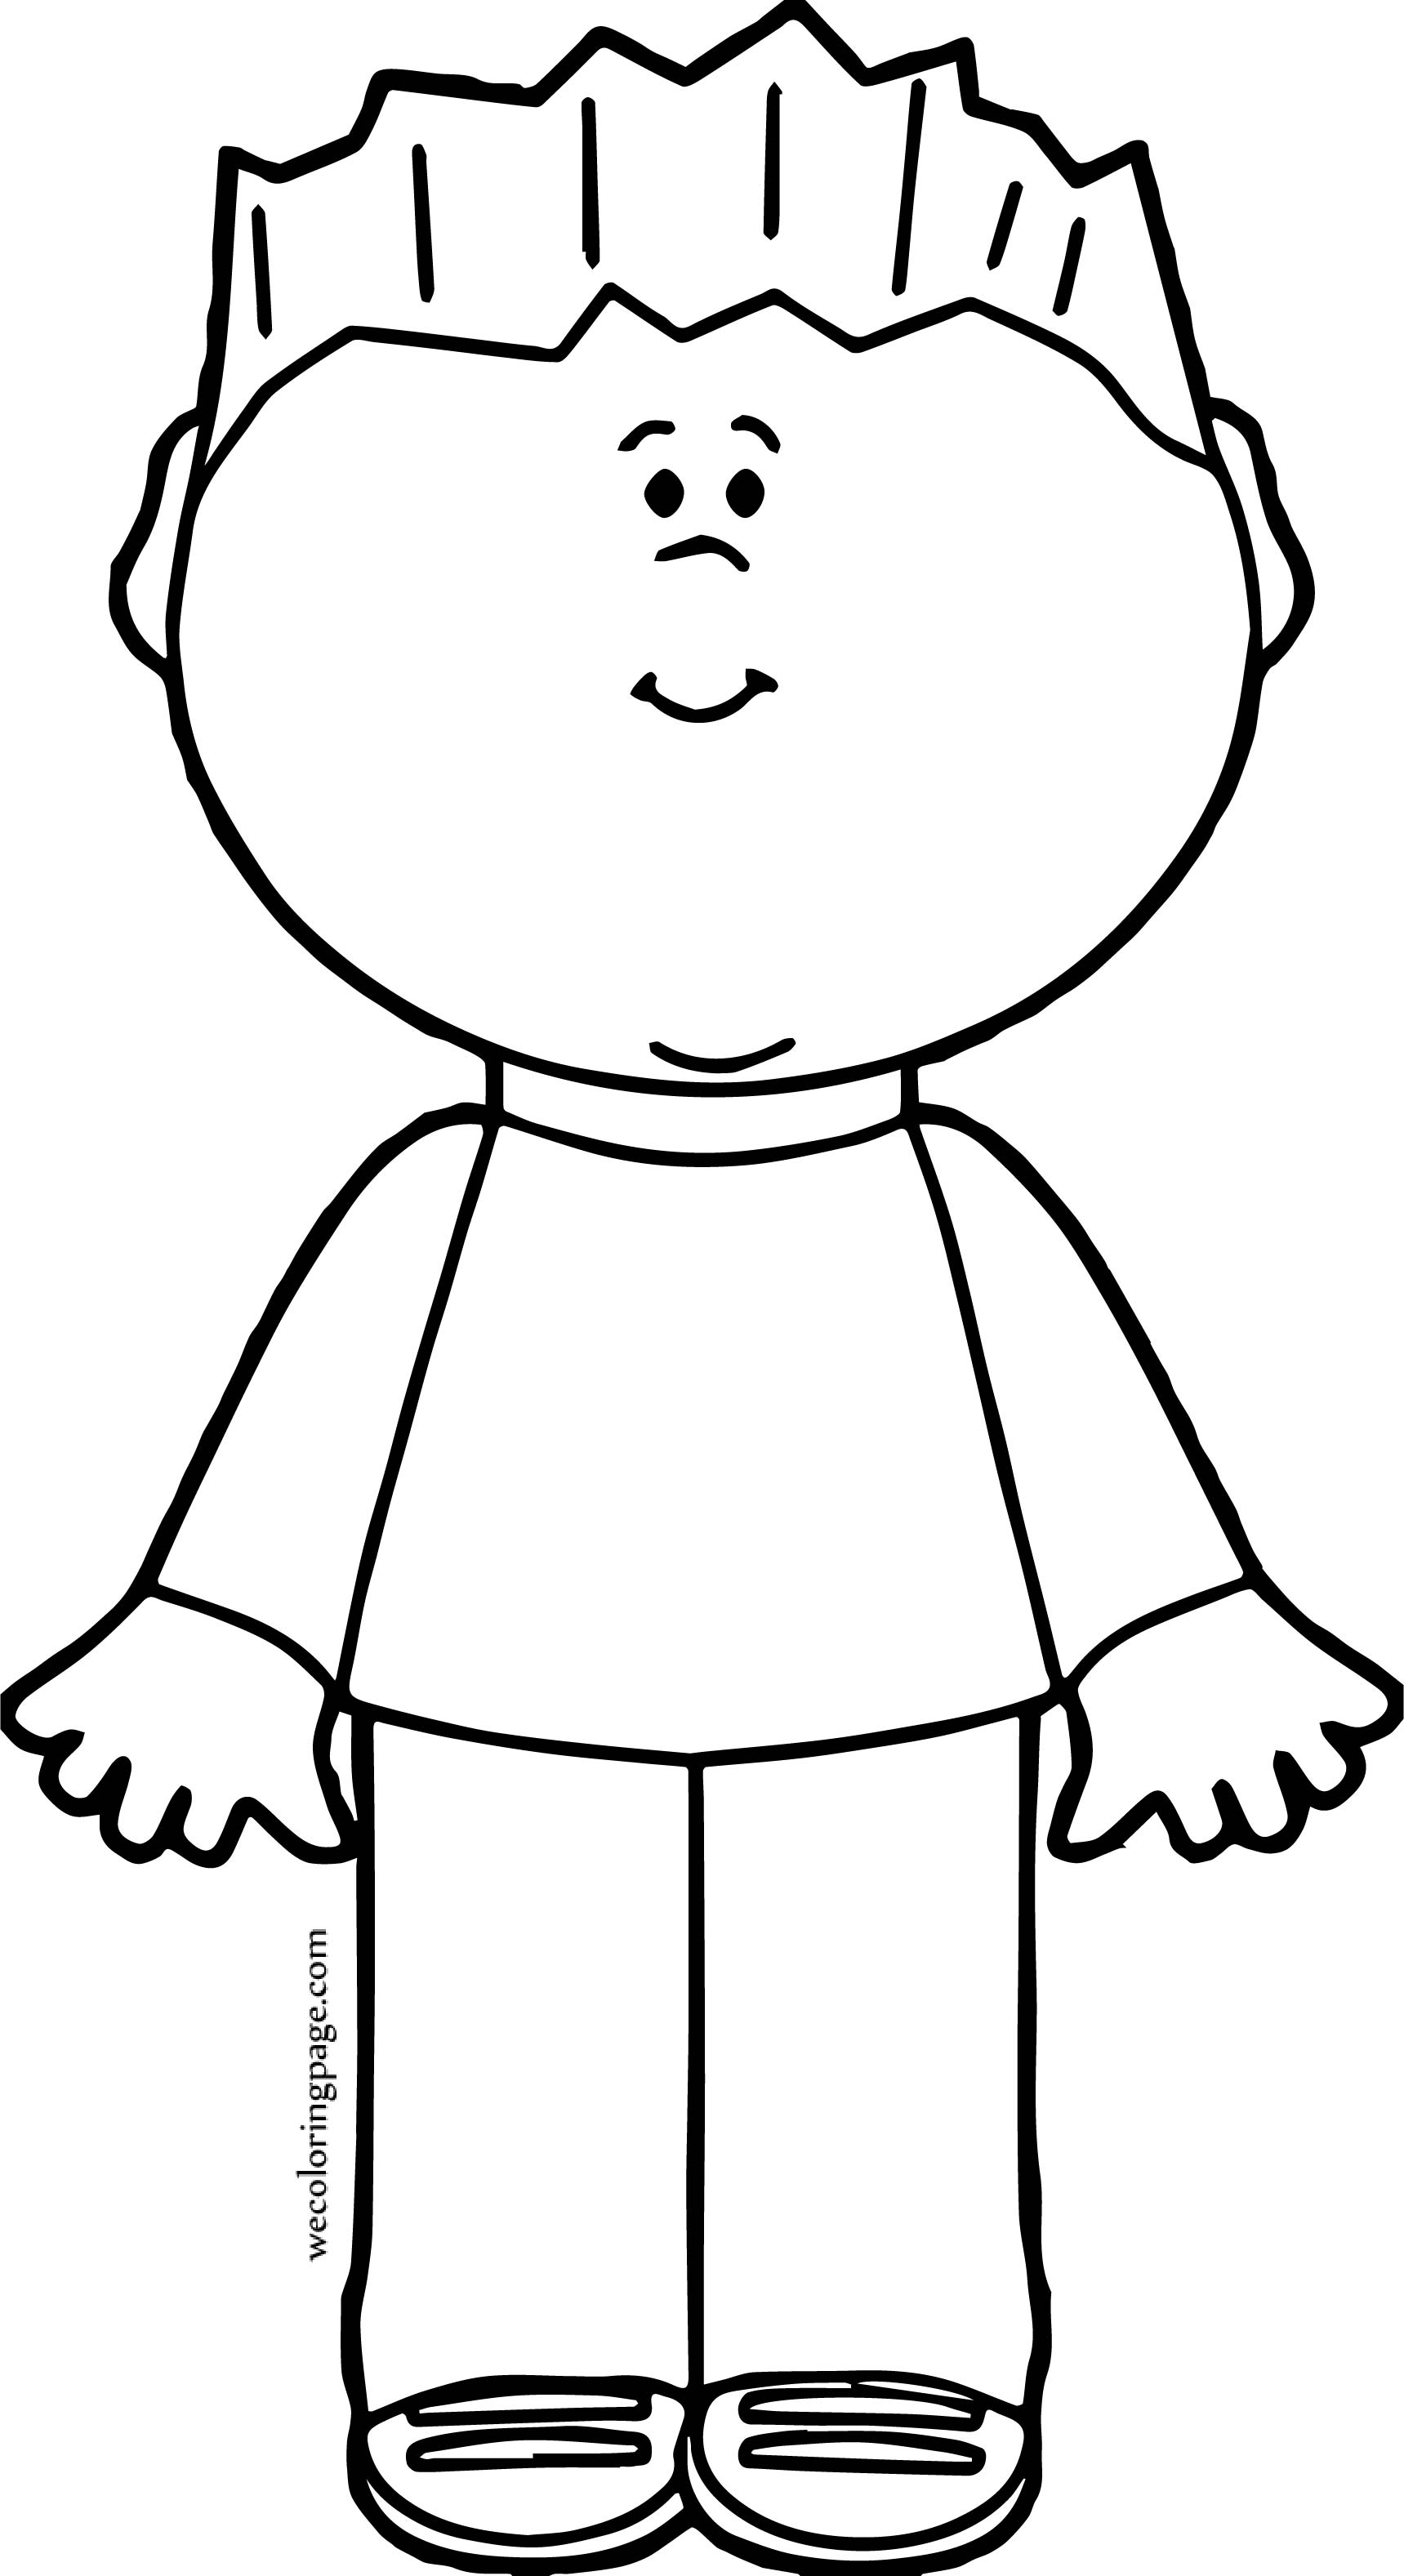 Boy Front Coloring Page | Wecoloringpage